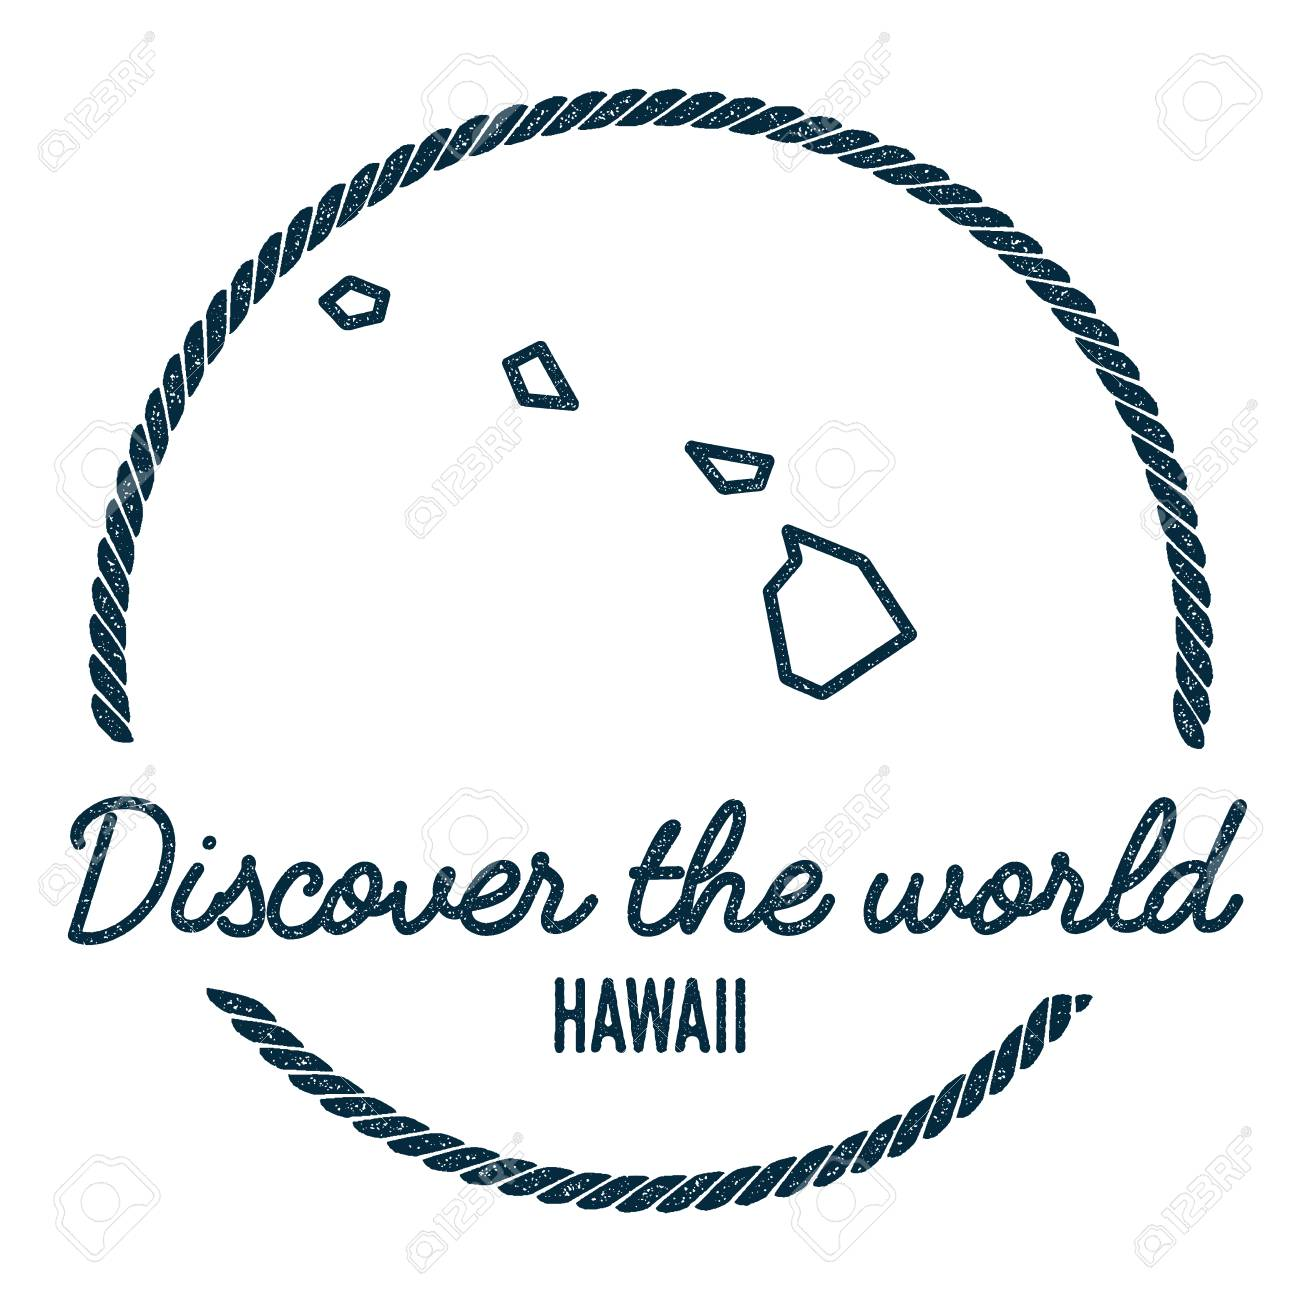 Hawaii Map Outline Vintage Discover The World Rubber Stamp With